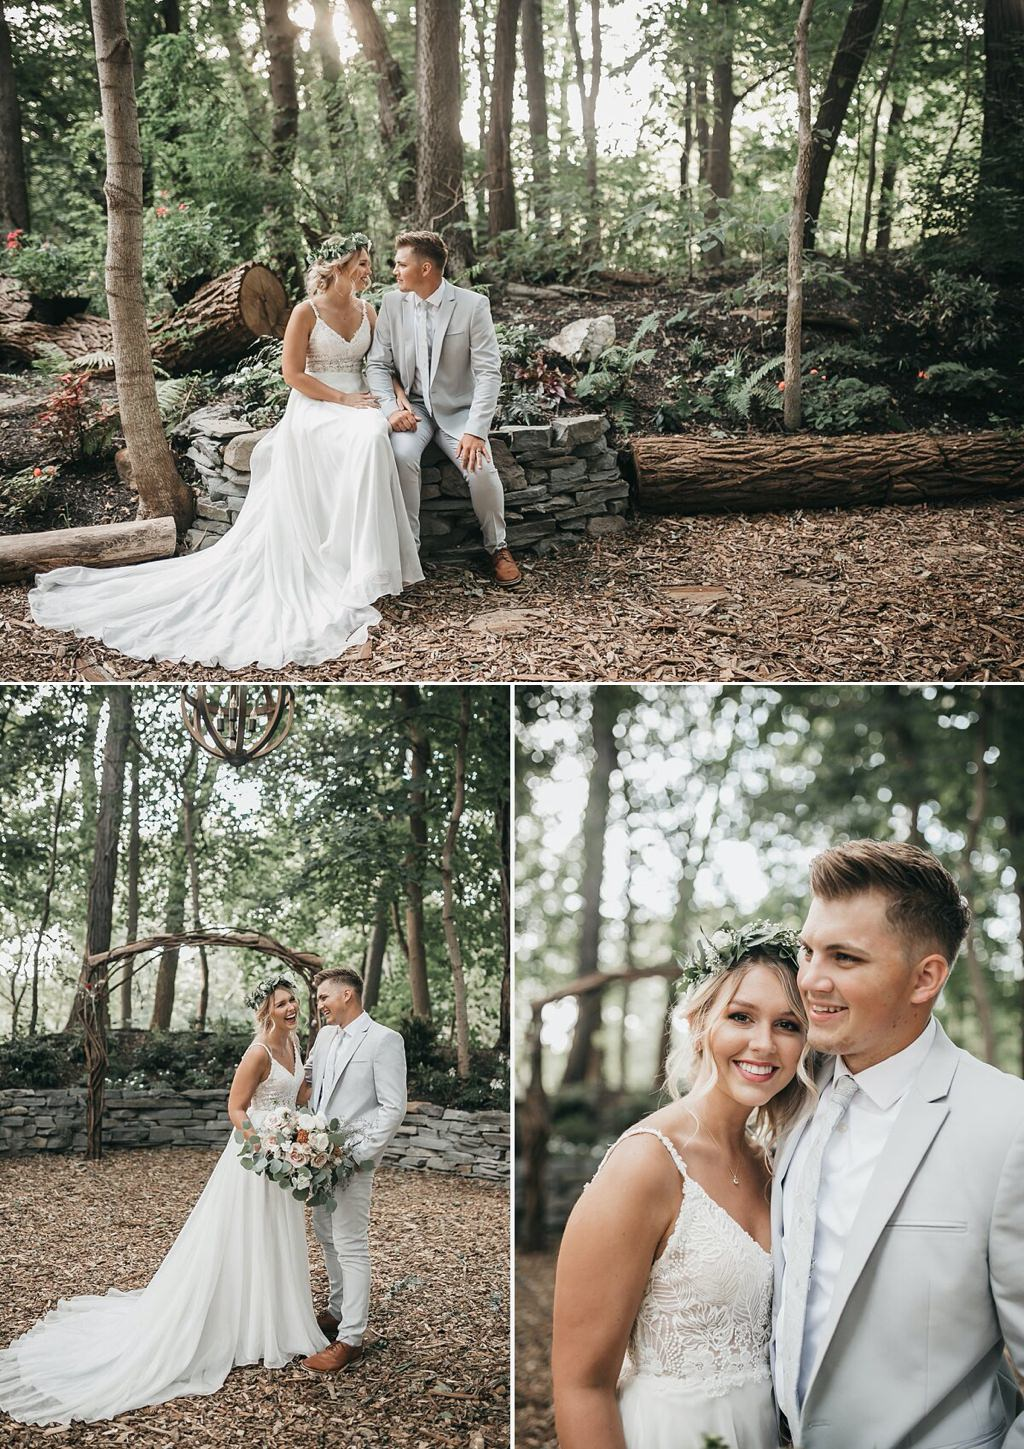 A bride and groom posing for wedding photos at Stone Mill Inn